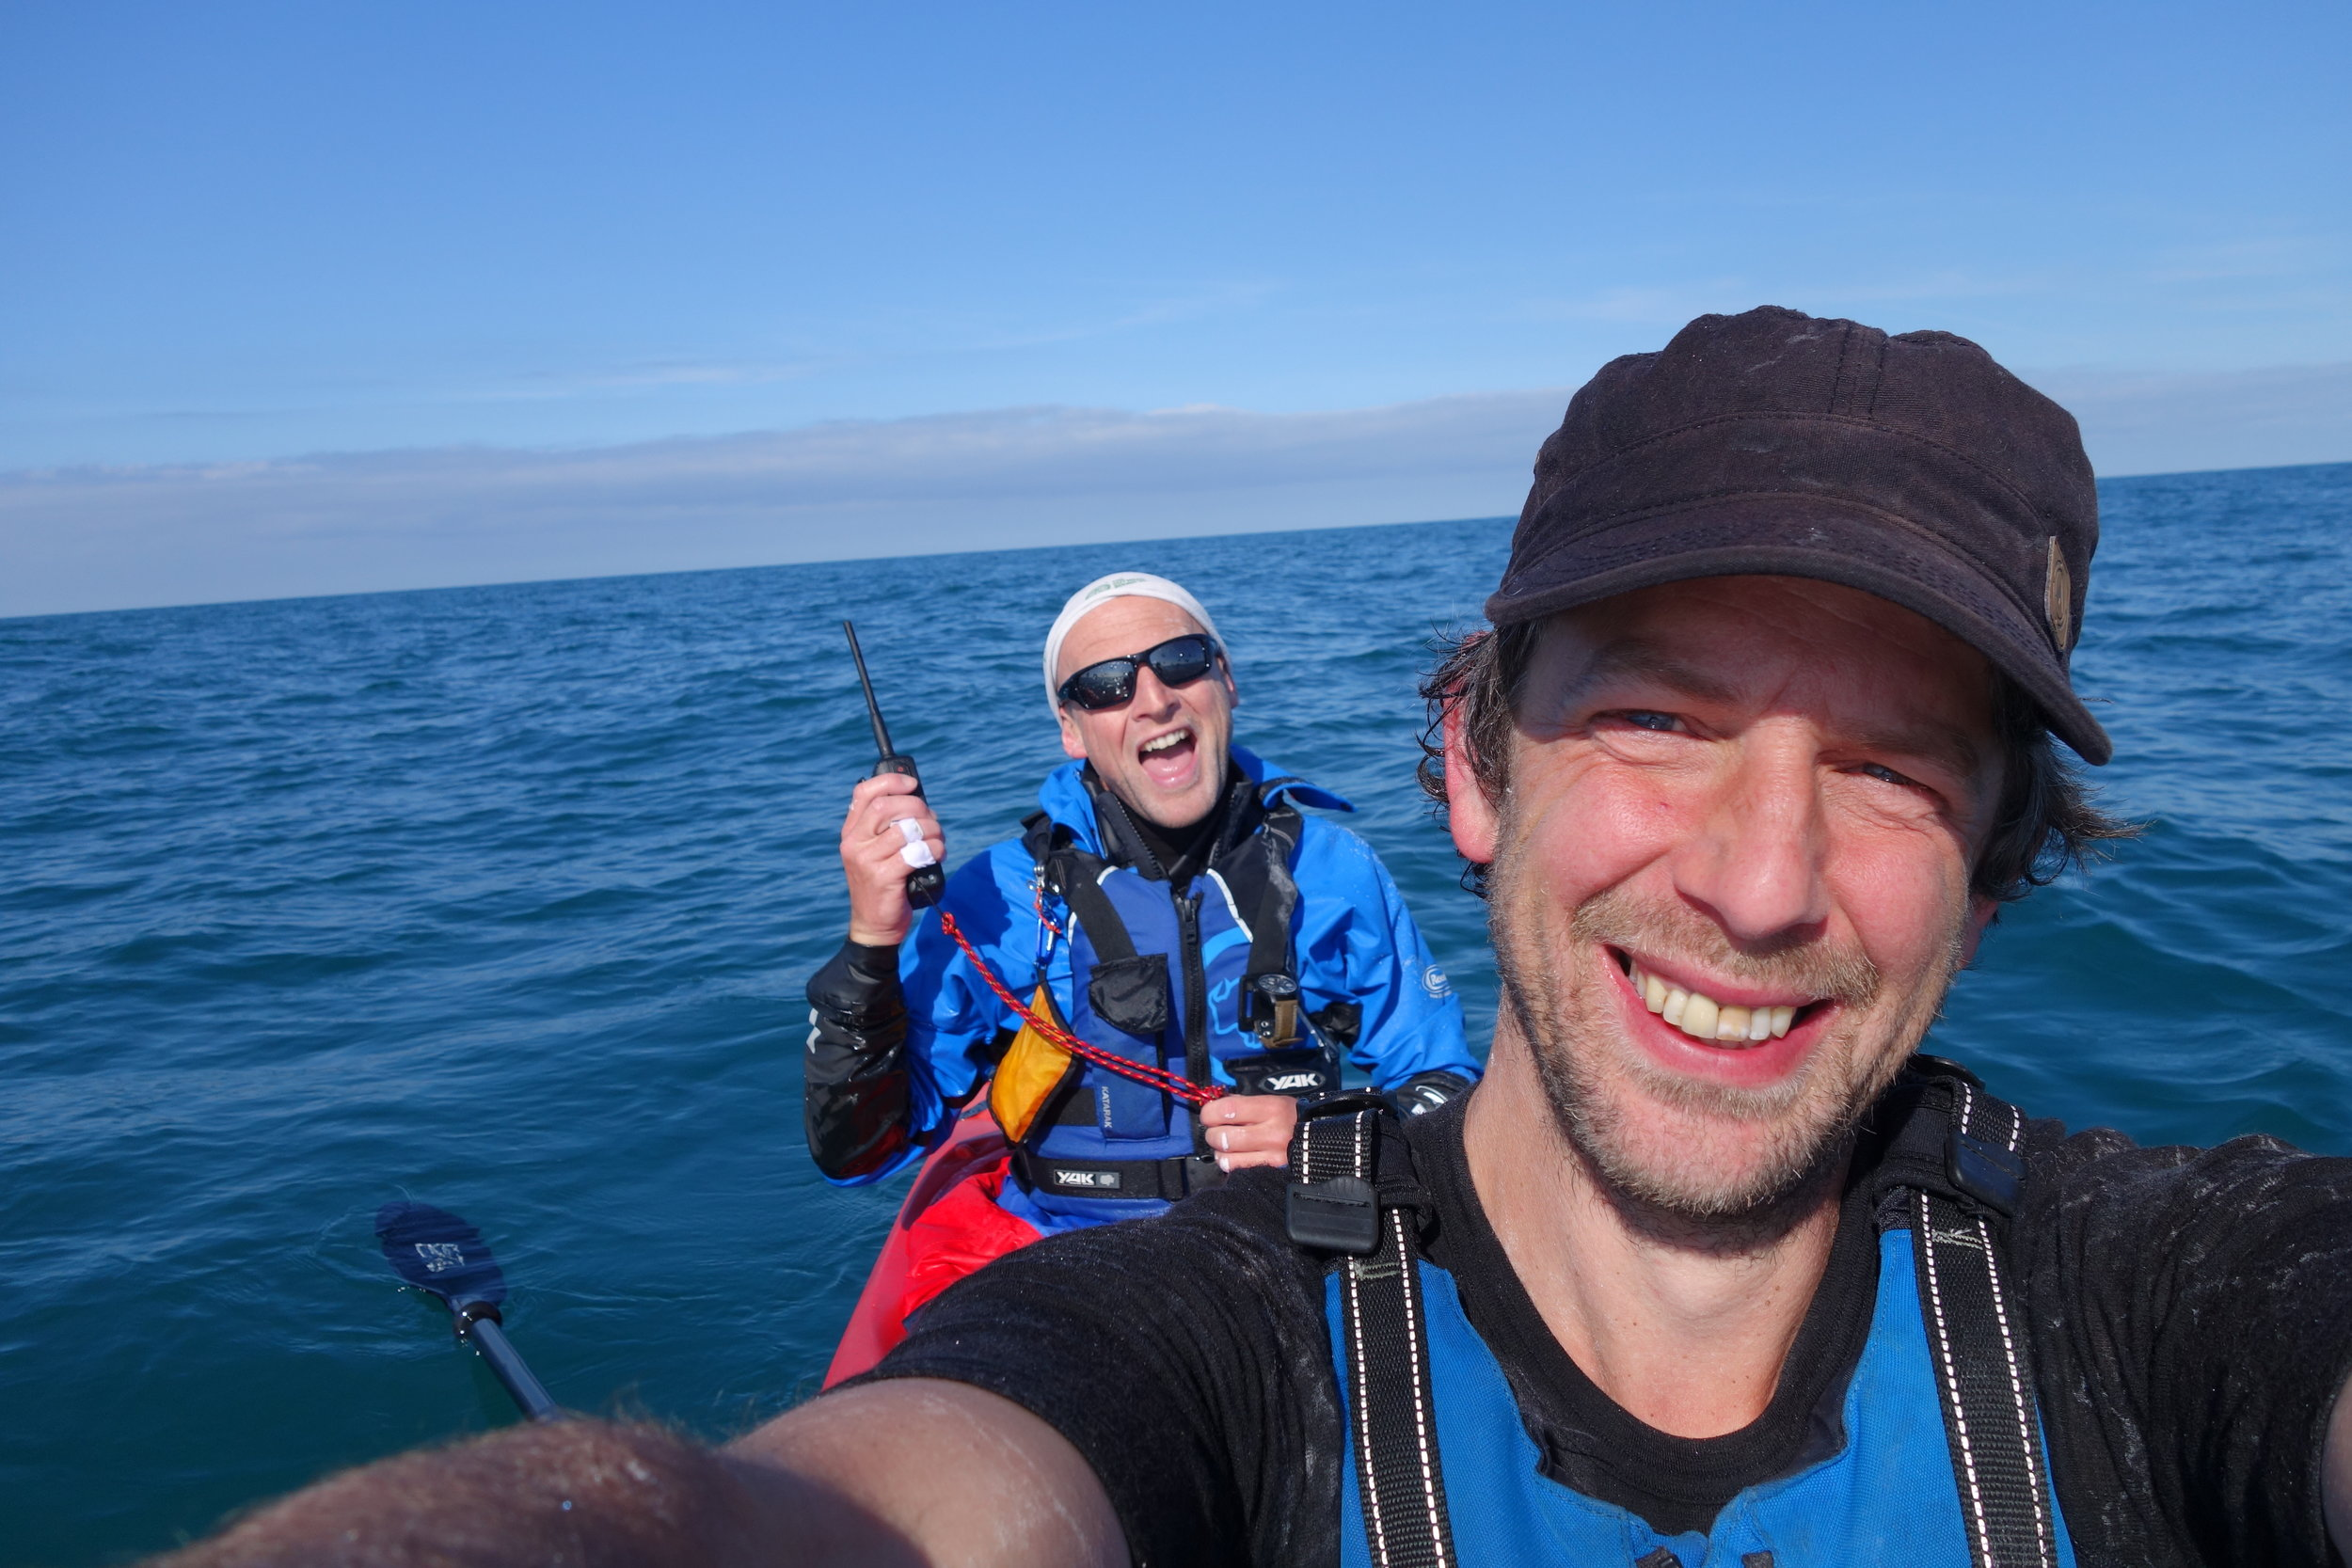 8 hours into the Irish sea crossing with Mike Alexander. Wales somewhere in the background!